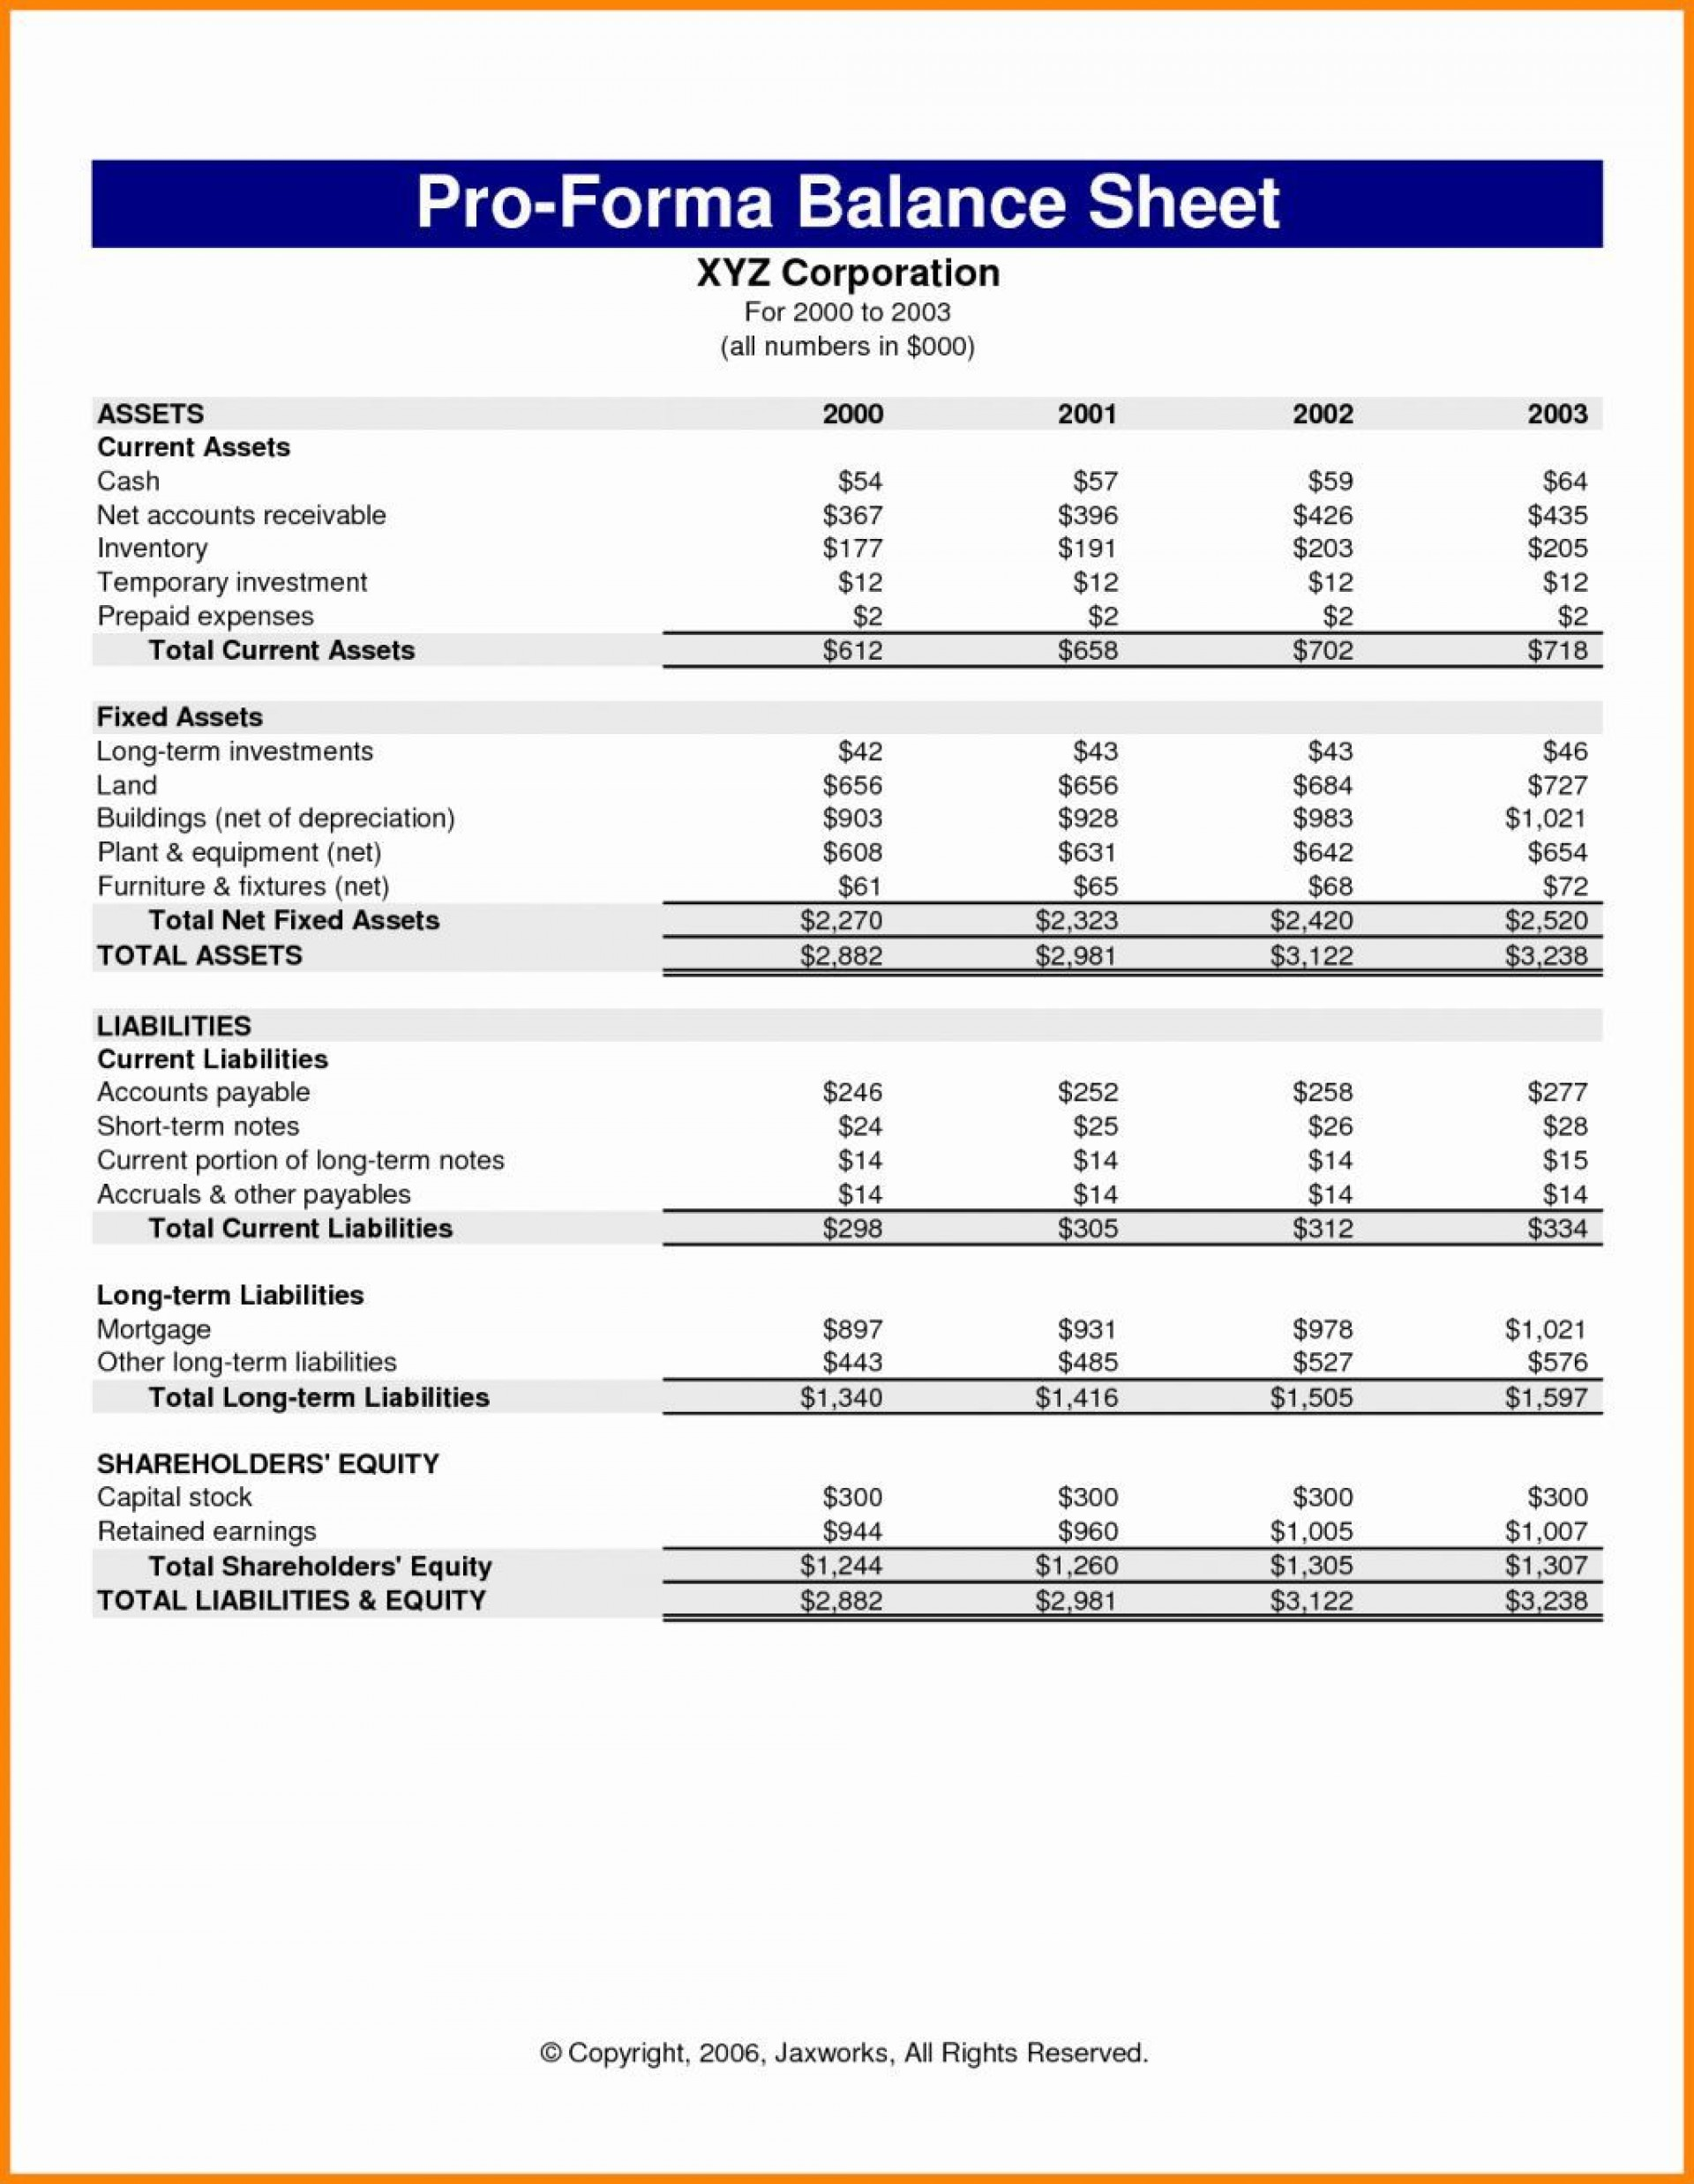 001 Simple Pro Forma Financial Statement Template High Resolution  Format Sample1920